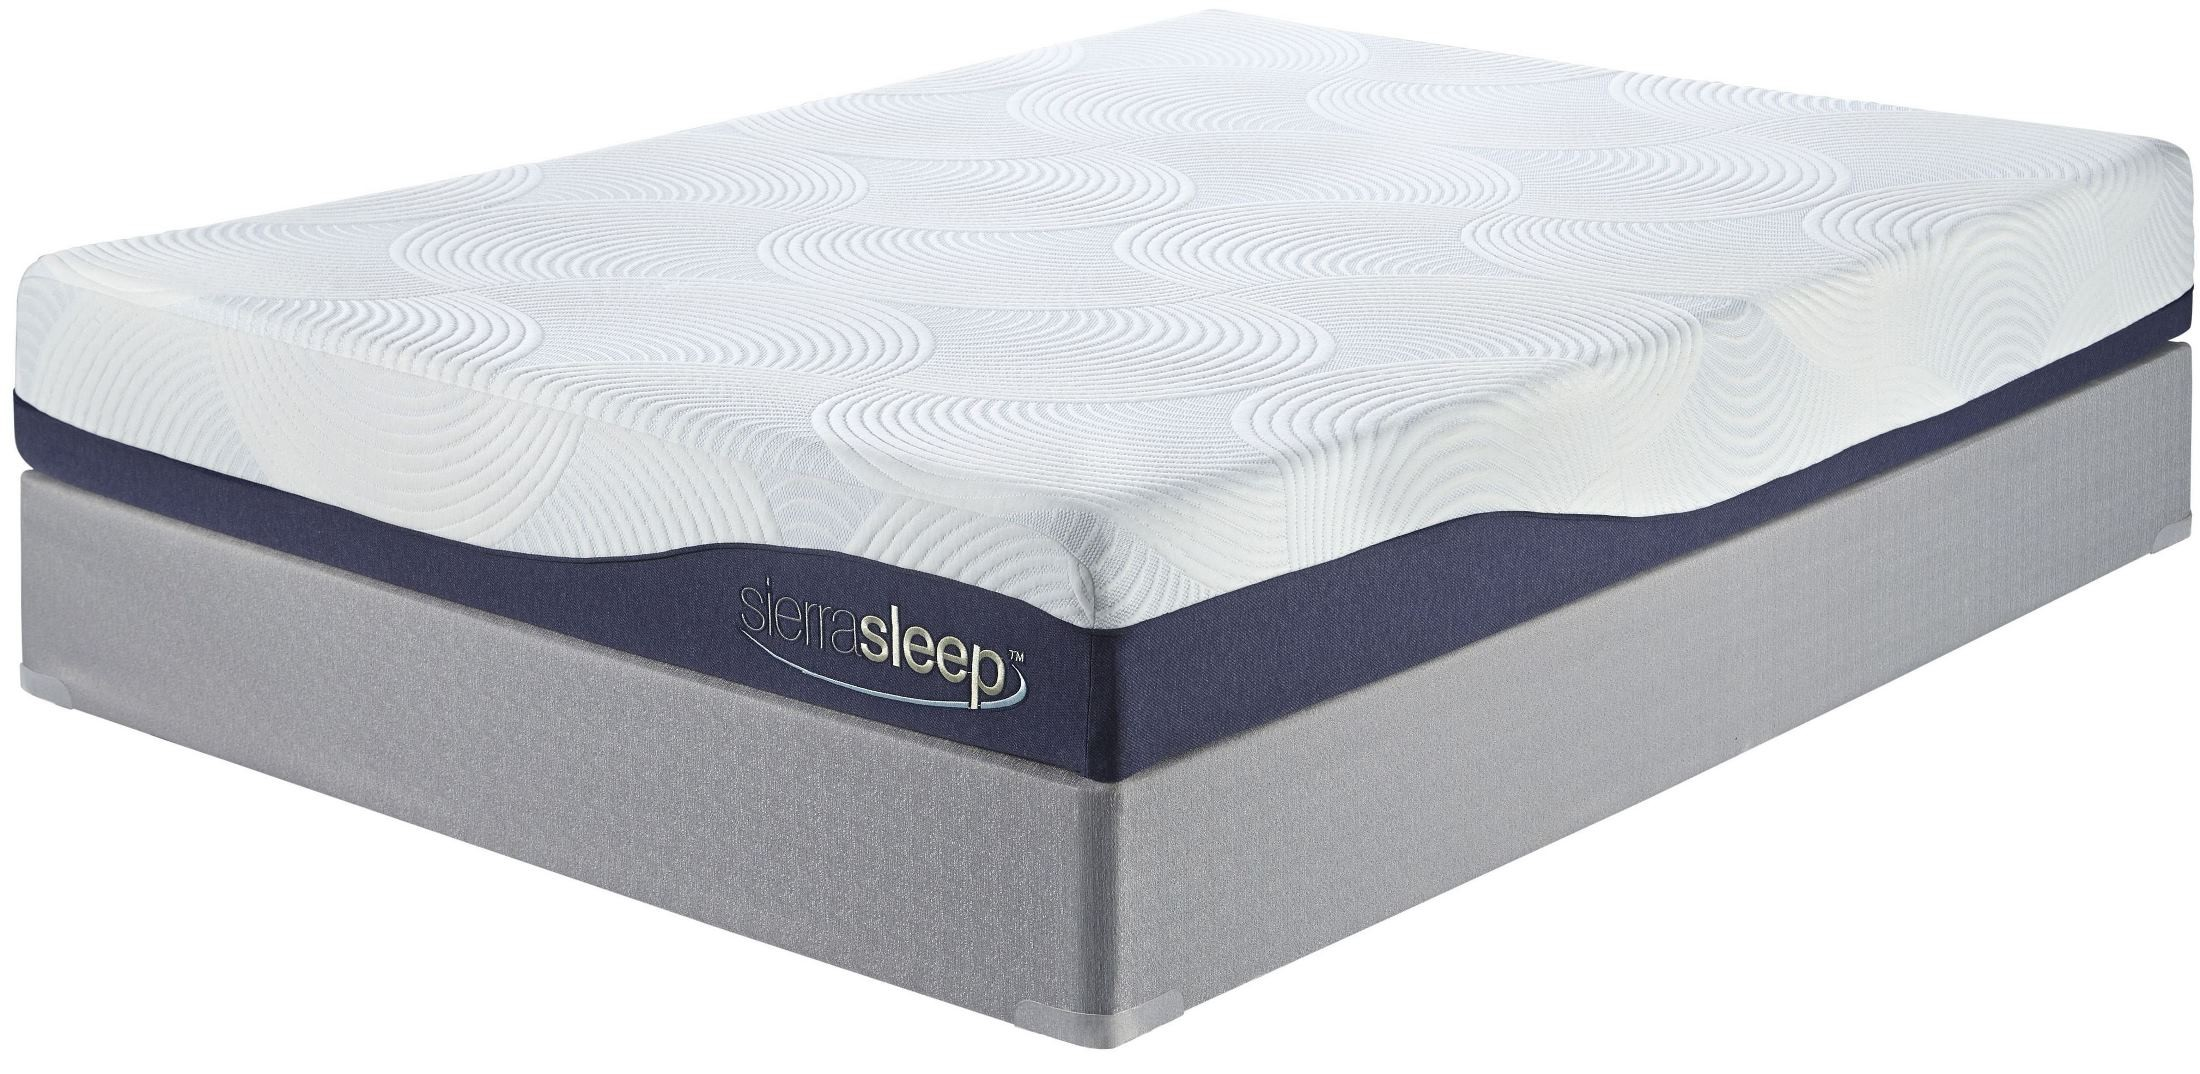 9 inch gel memory foam white king mattress from ashley m97241 coleman furniture Memory foam mattress king size sale